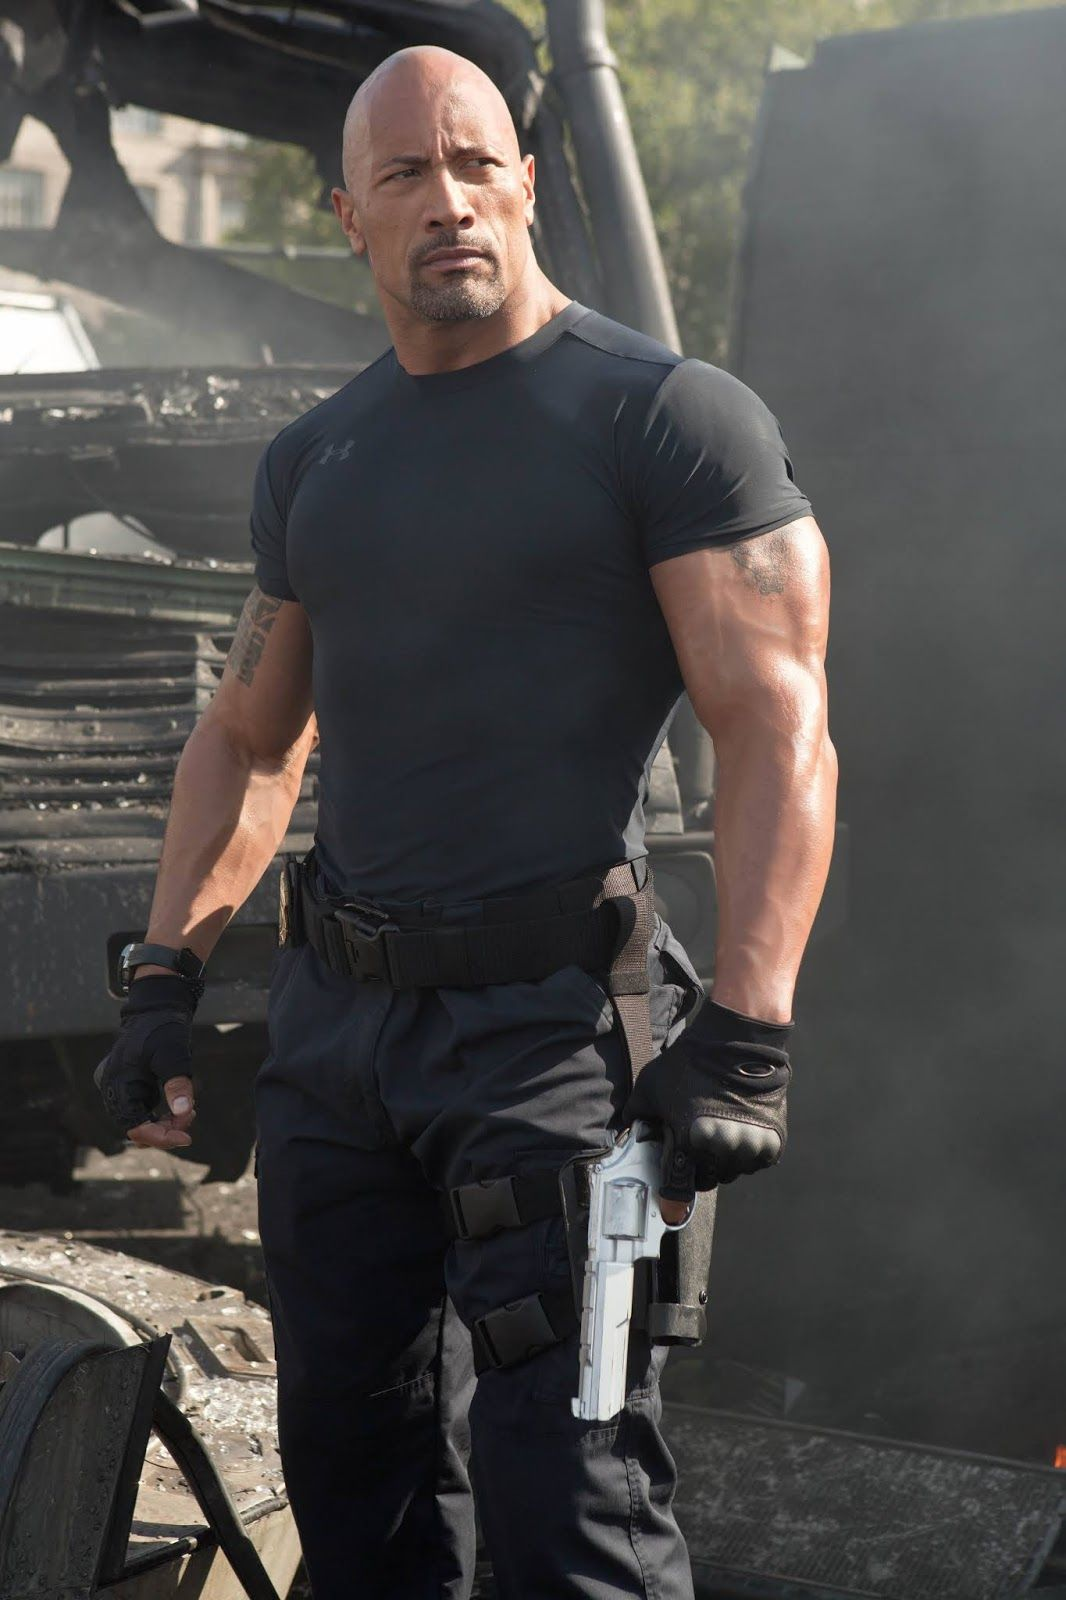 Dwayne Johnson Android And Iphone Wallpaper Download Full Hd 99 Bollywood Images In 2020 Dwayne Johnson Iphone Wallpaper The Rock Dwayne Johnson